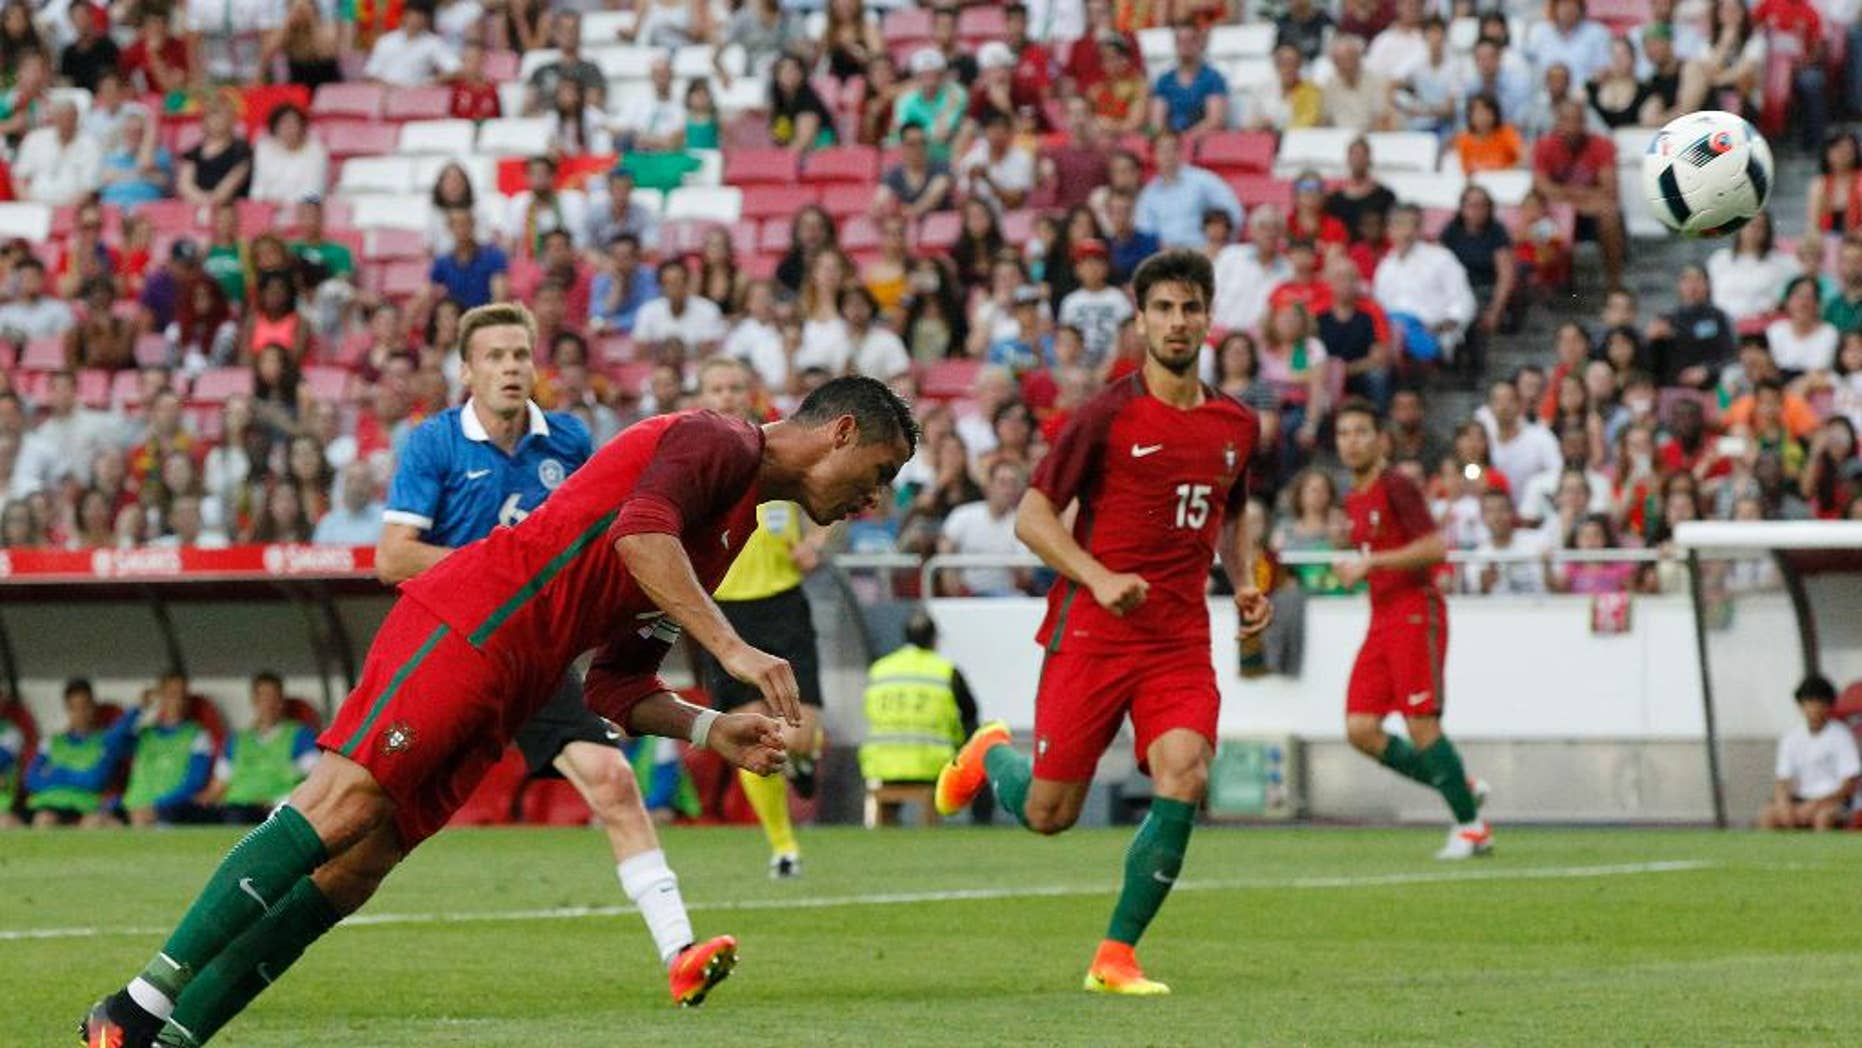 FILE - In this June 8, 2016, file photo, Portugal's Cristiano Ronaldo heads the ball to score against Estonia during a friendly soccer match in Lisbon, Portugal. American soccer fans can watch a quintuple-header of major international tournament matches Saturday, the first of six in the next week-and-a-half.  (AP Photo/Steven Governo, File)